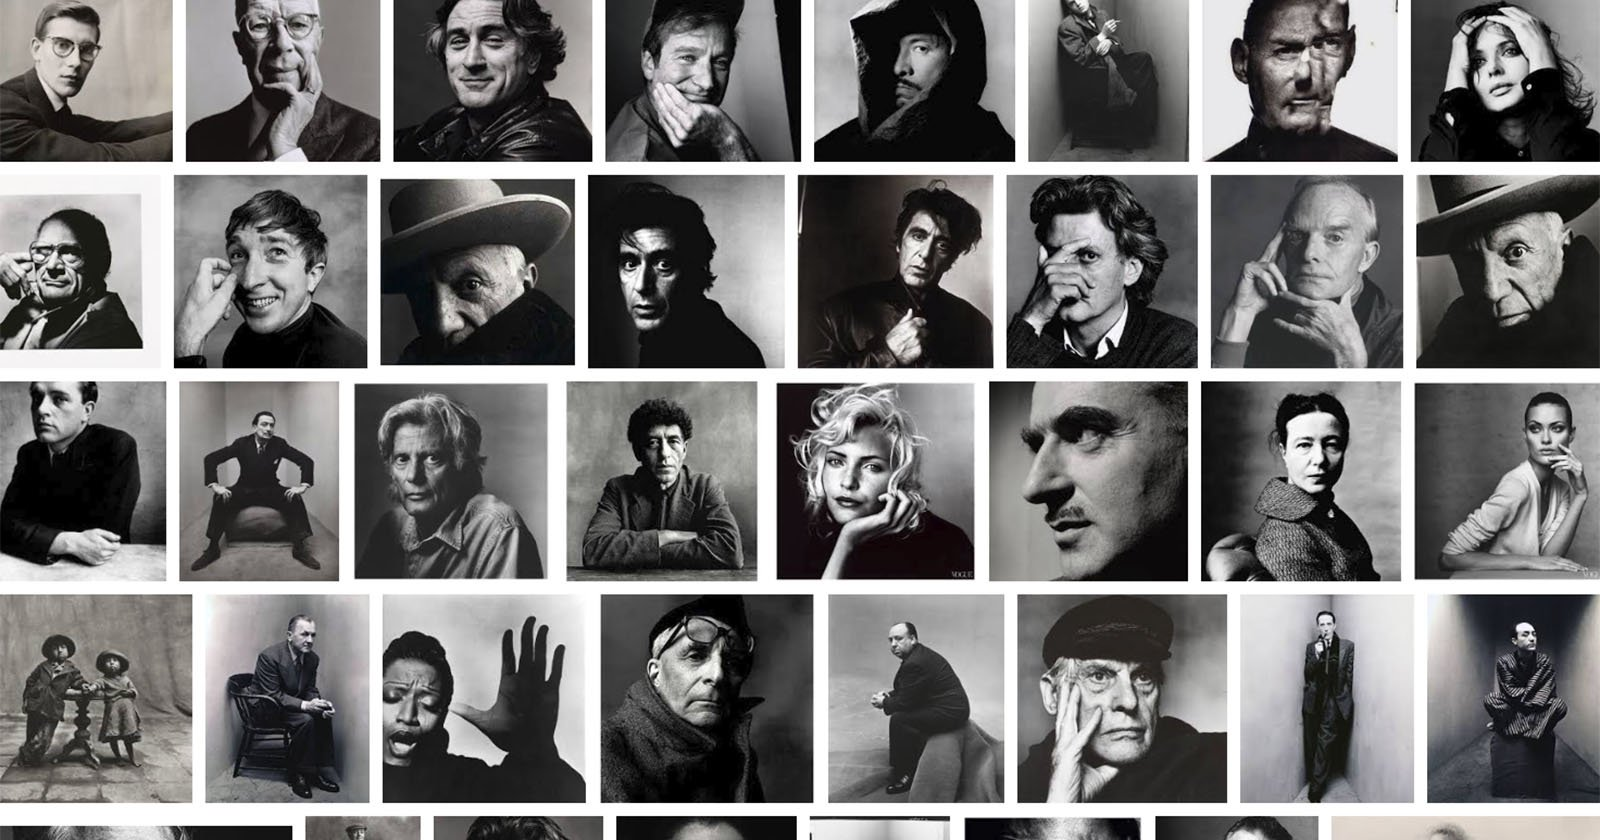 10 Things I Learned from Irving Penn